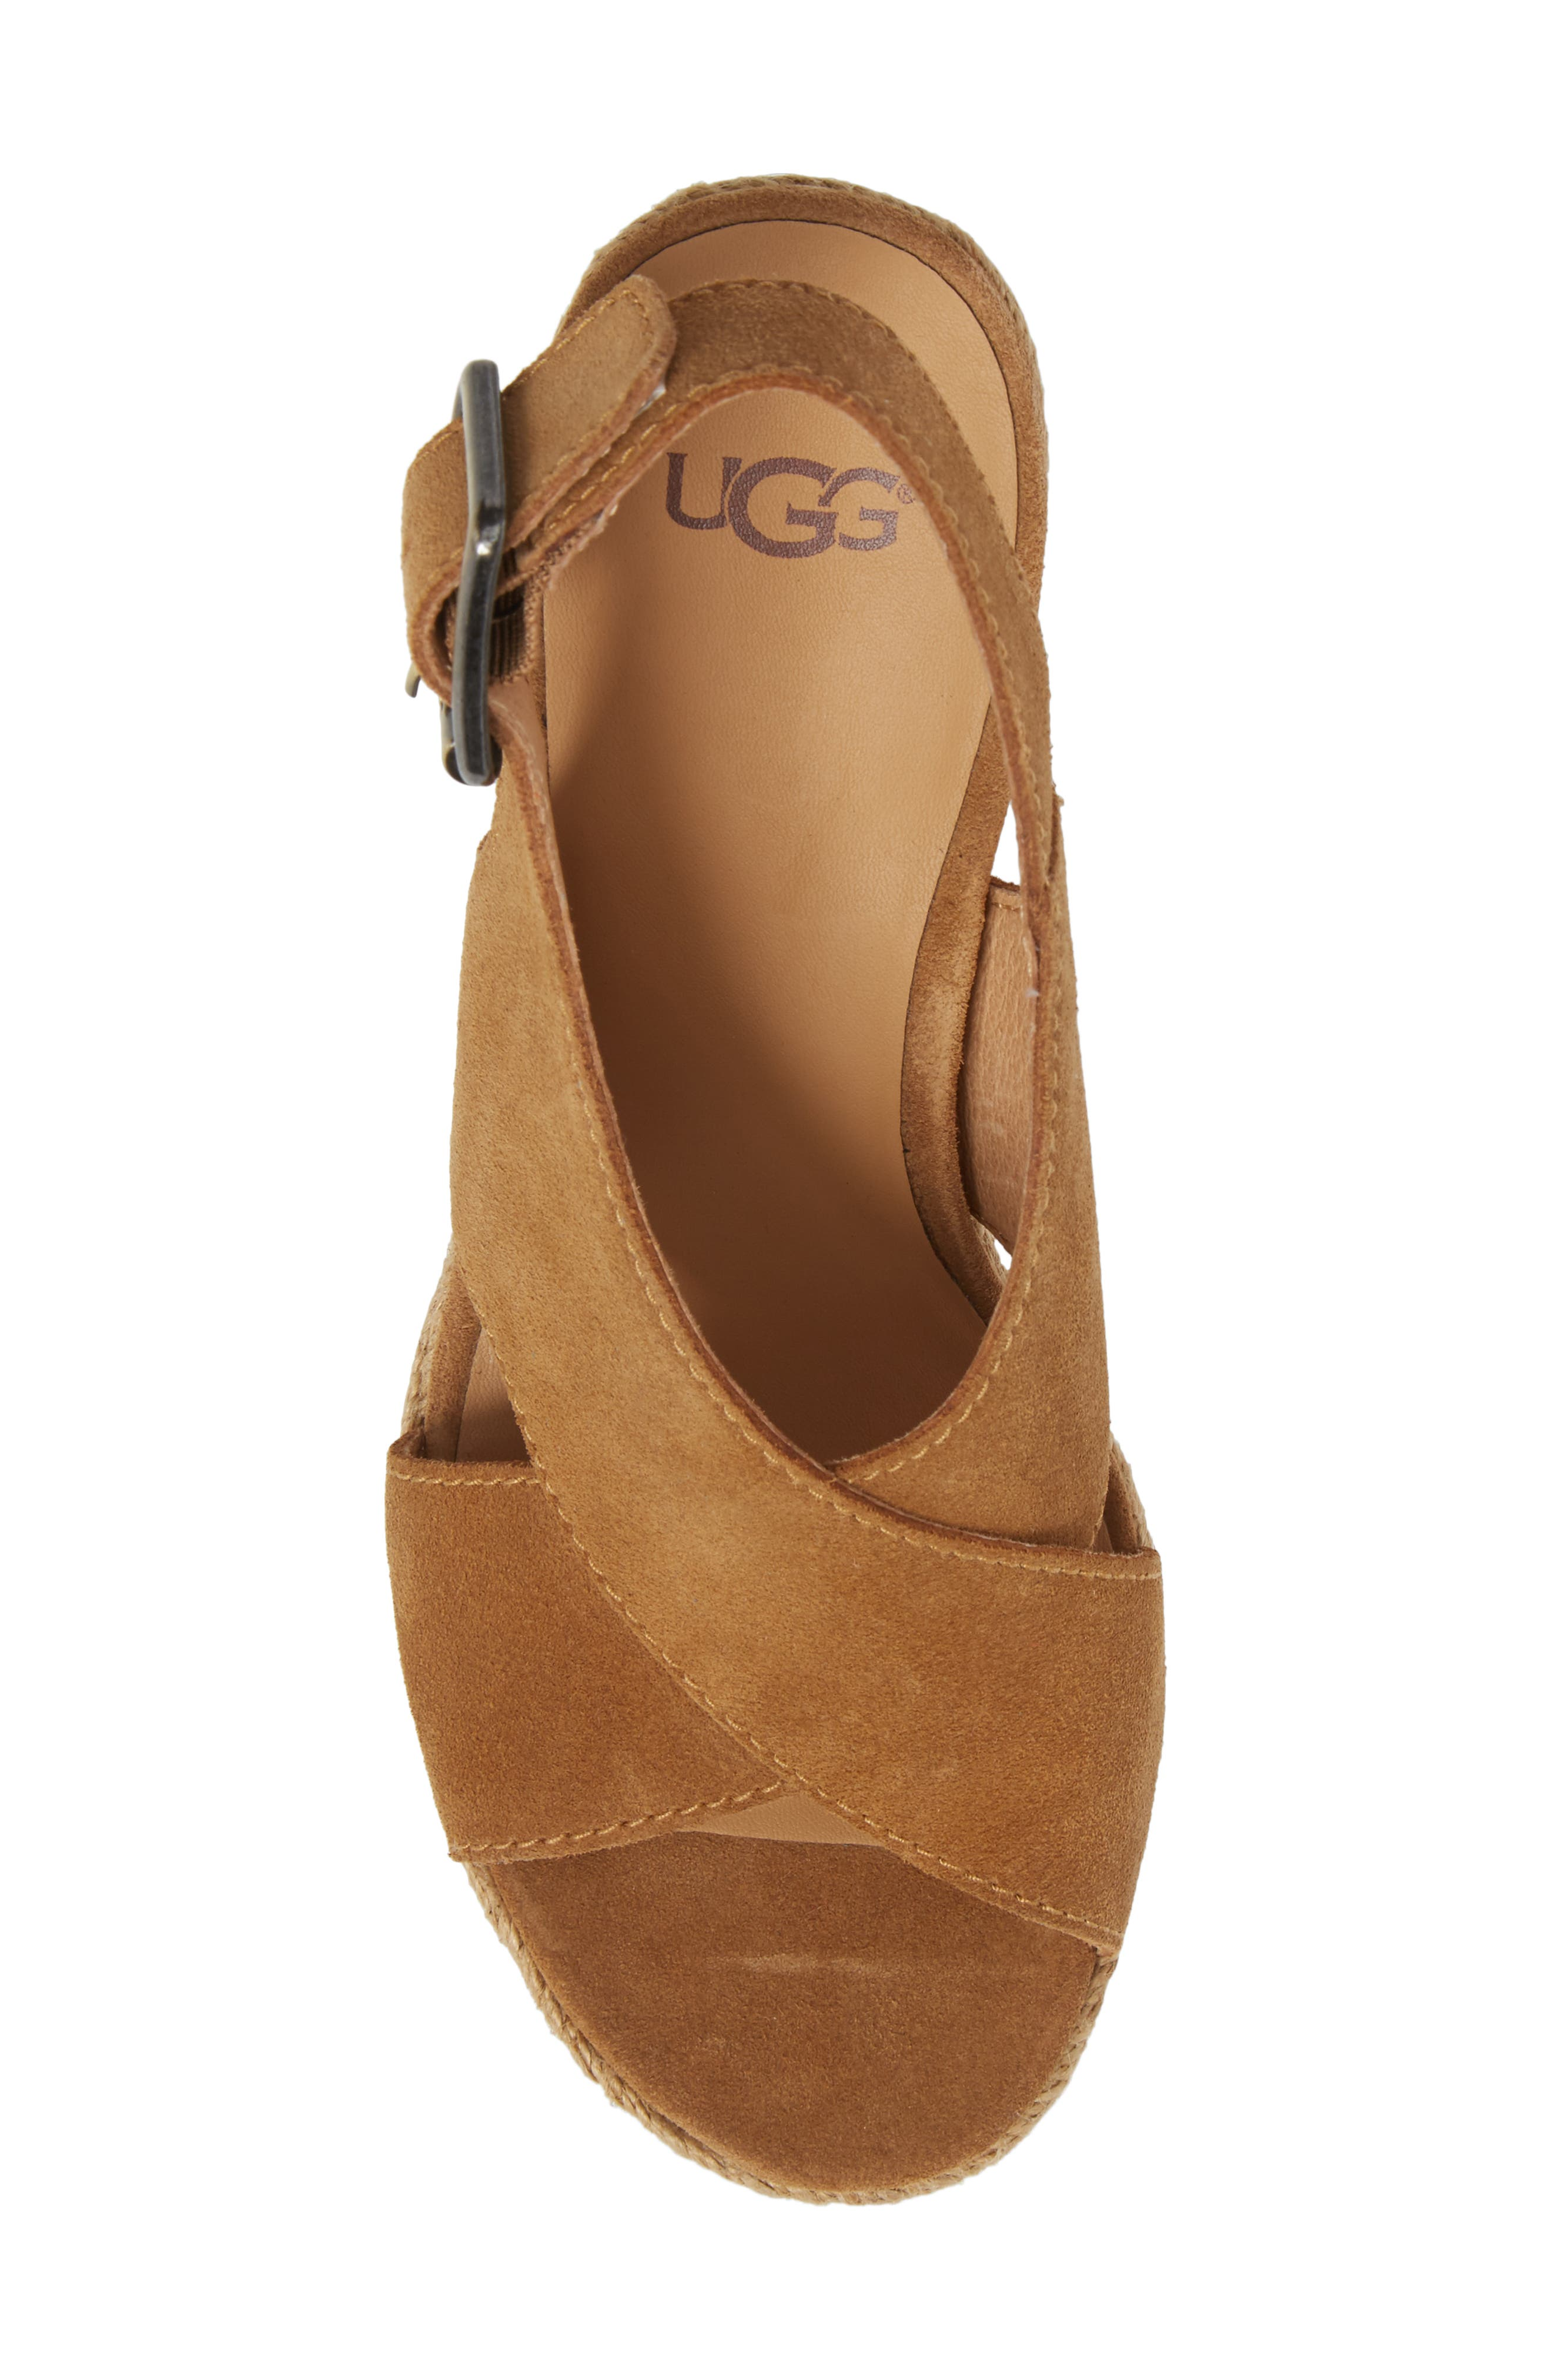 Harlow Platform Wedge Sandal,                             Alternate thumbnail 5, color,                             Chestnut Suede